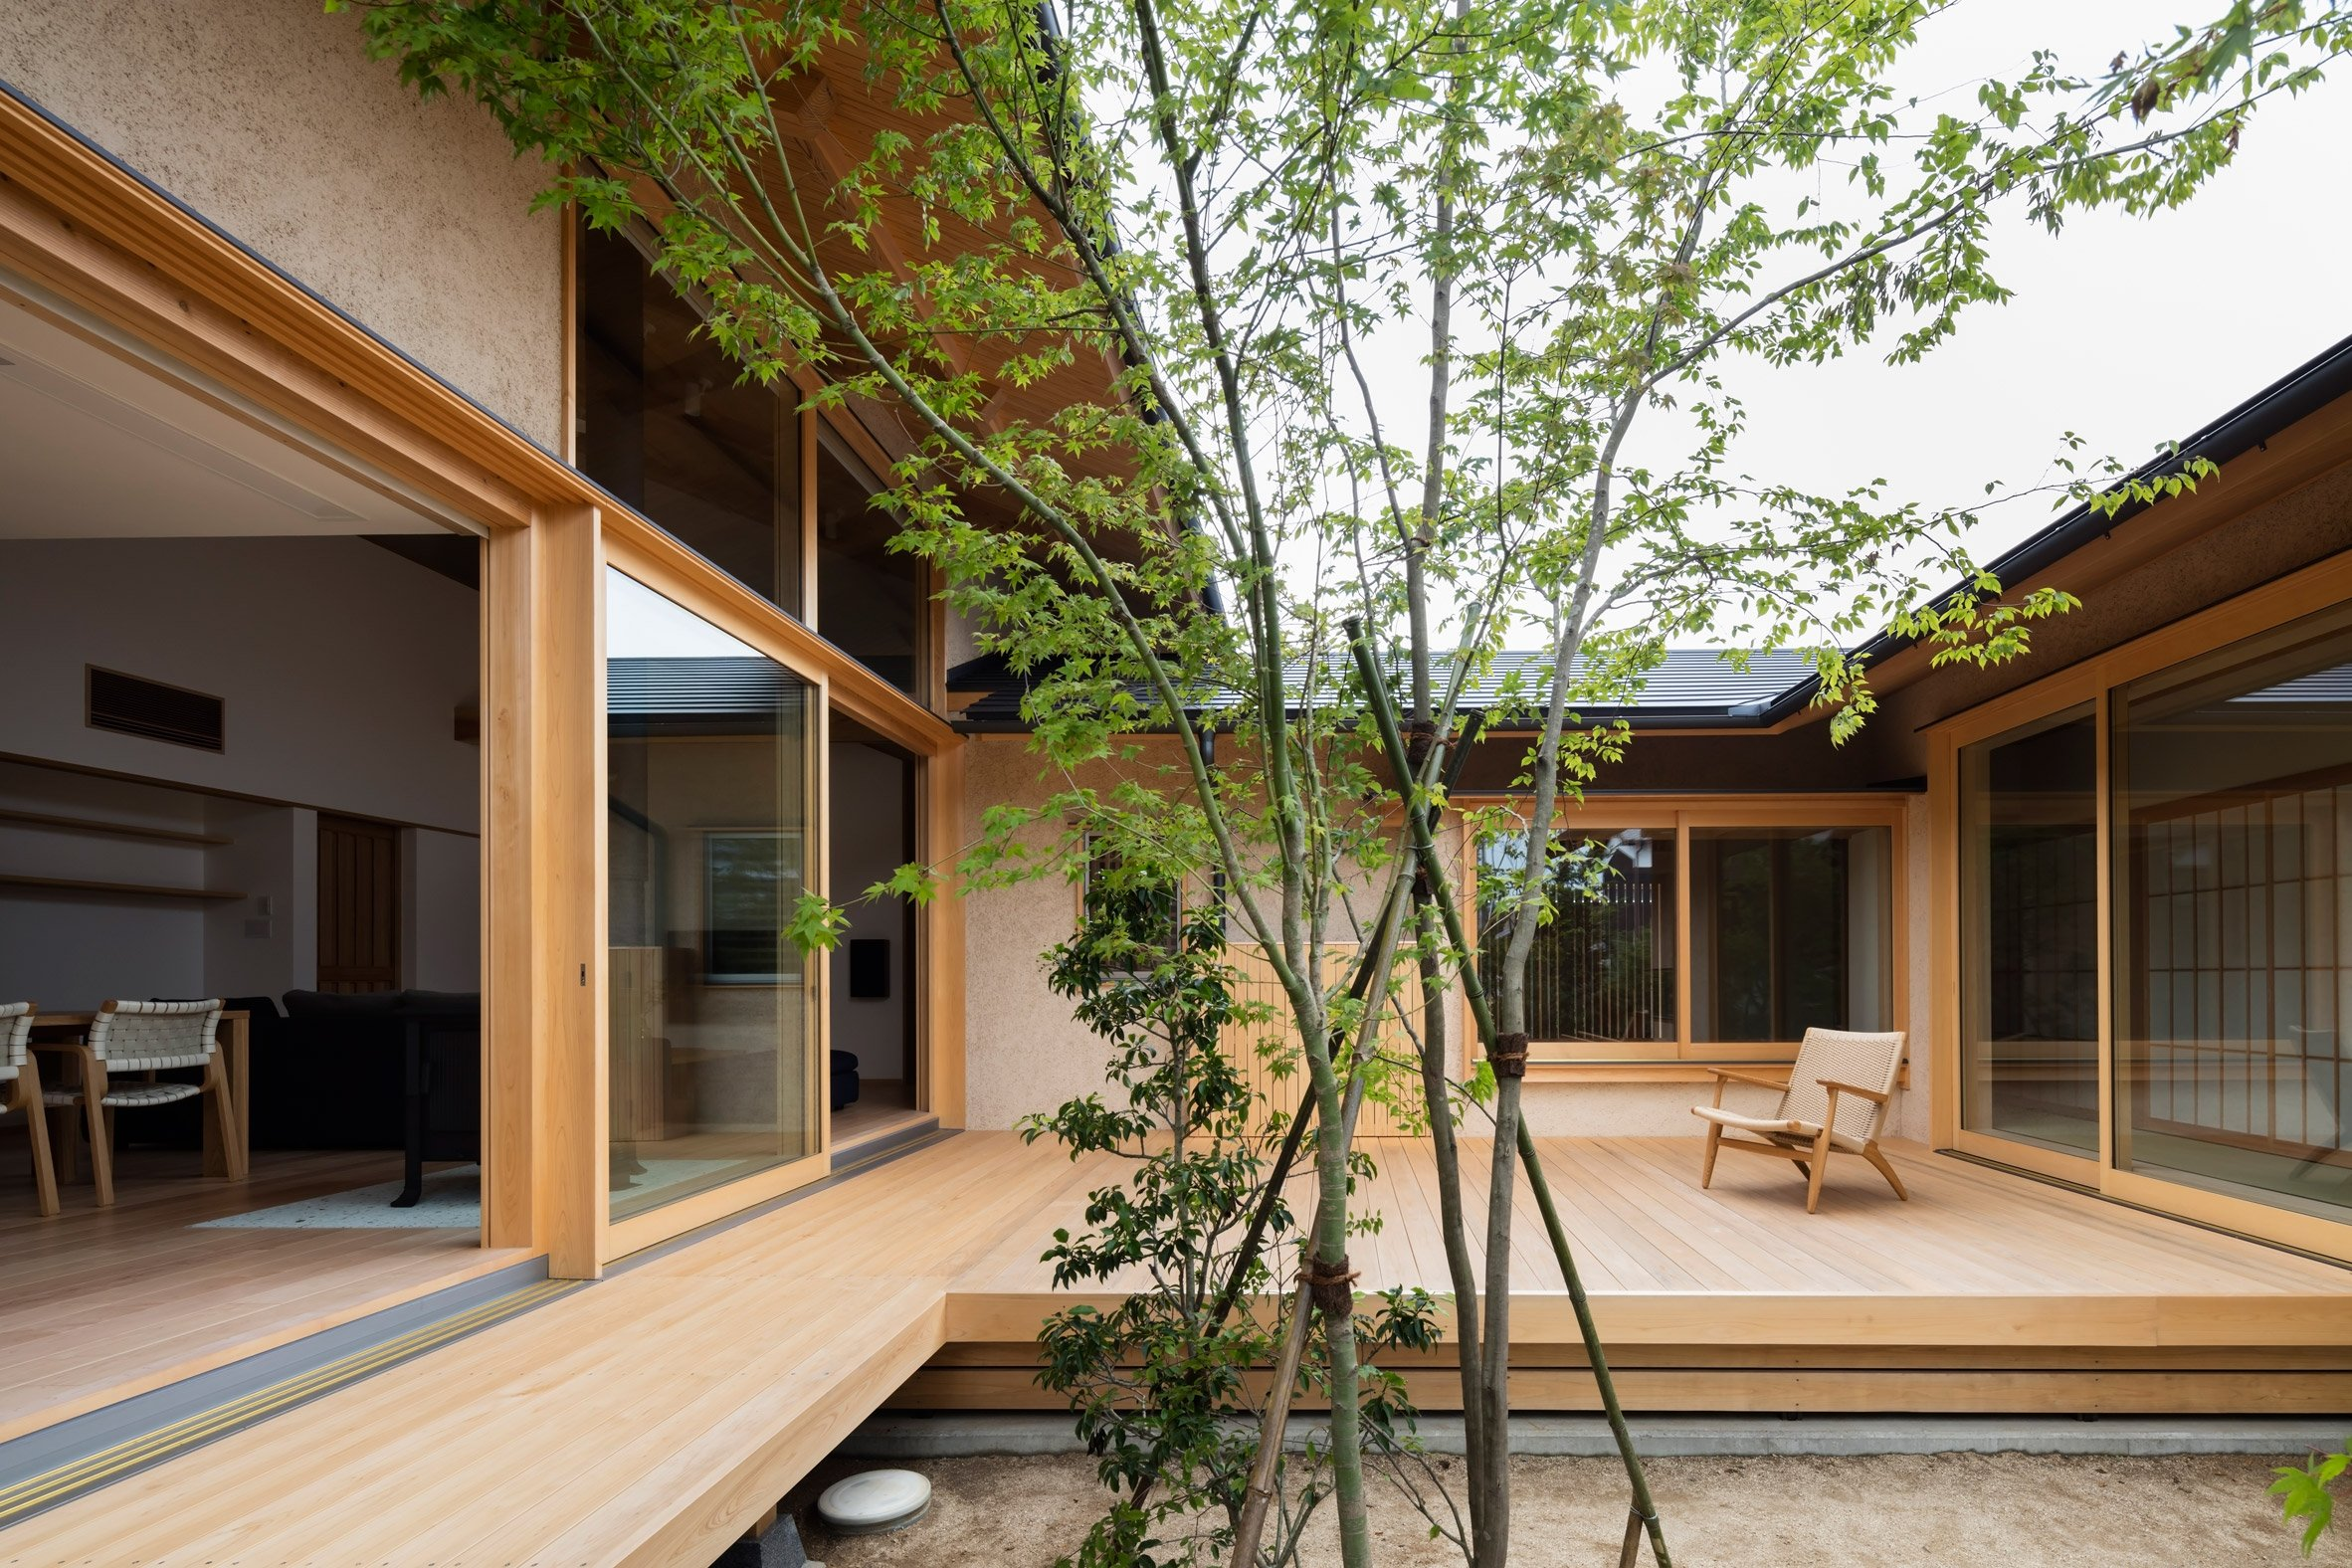 Hiiragi's House is a Japanese home arranged around a courtyard and old tree